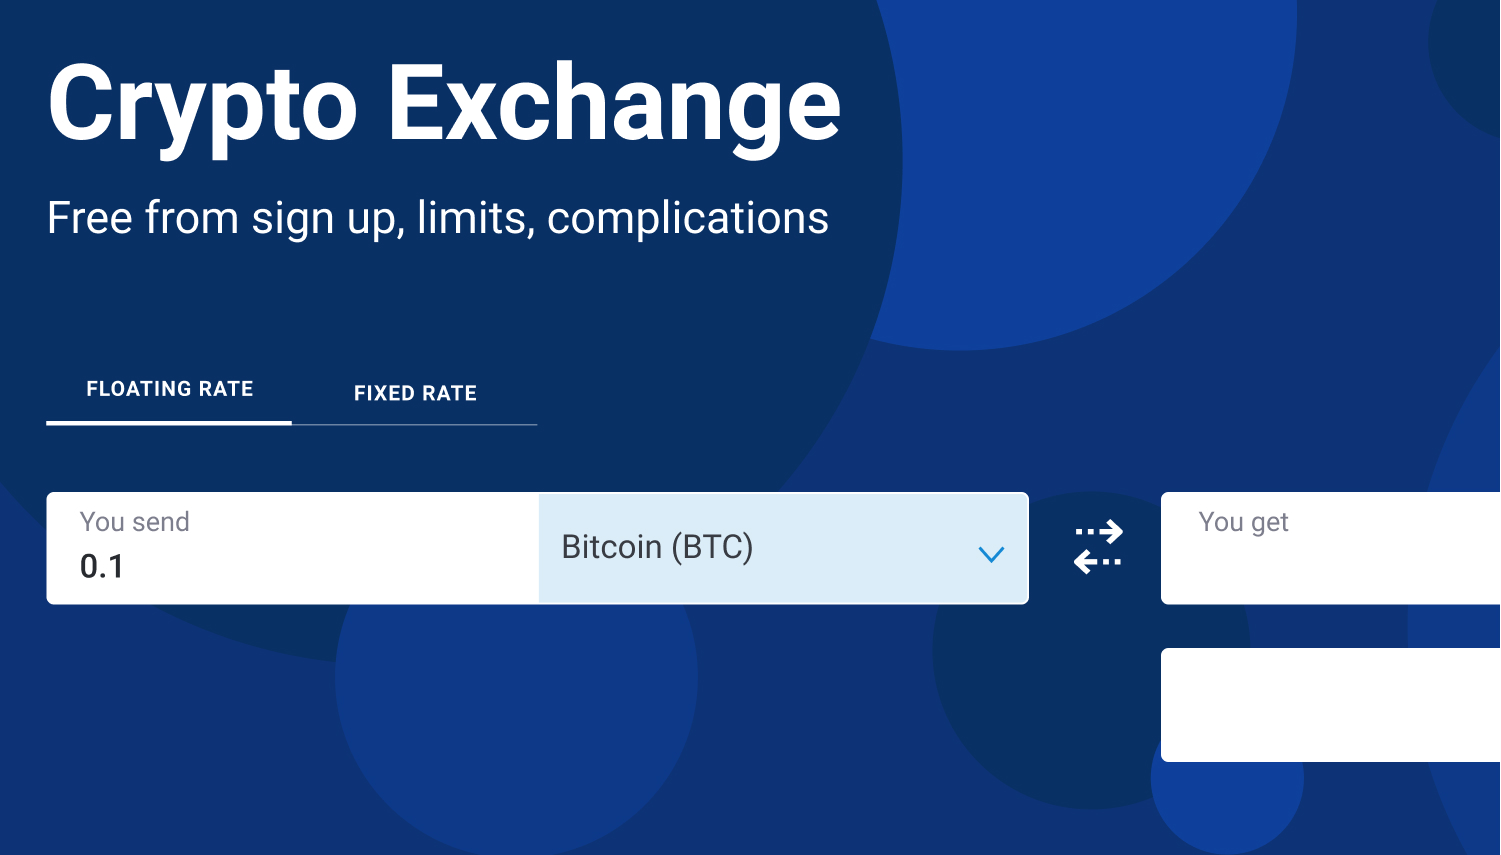 enter the amount of Bitcoin to exchange